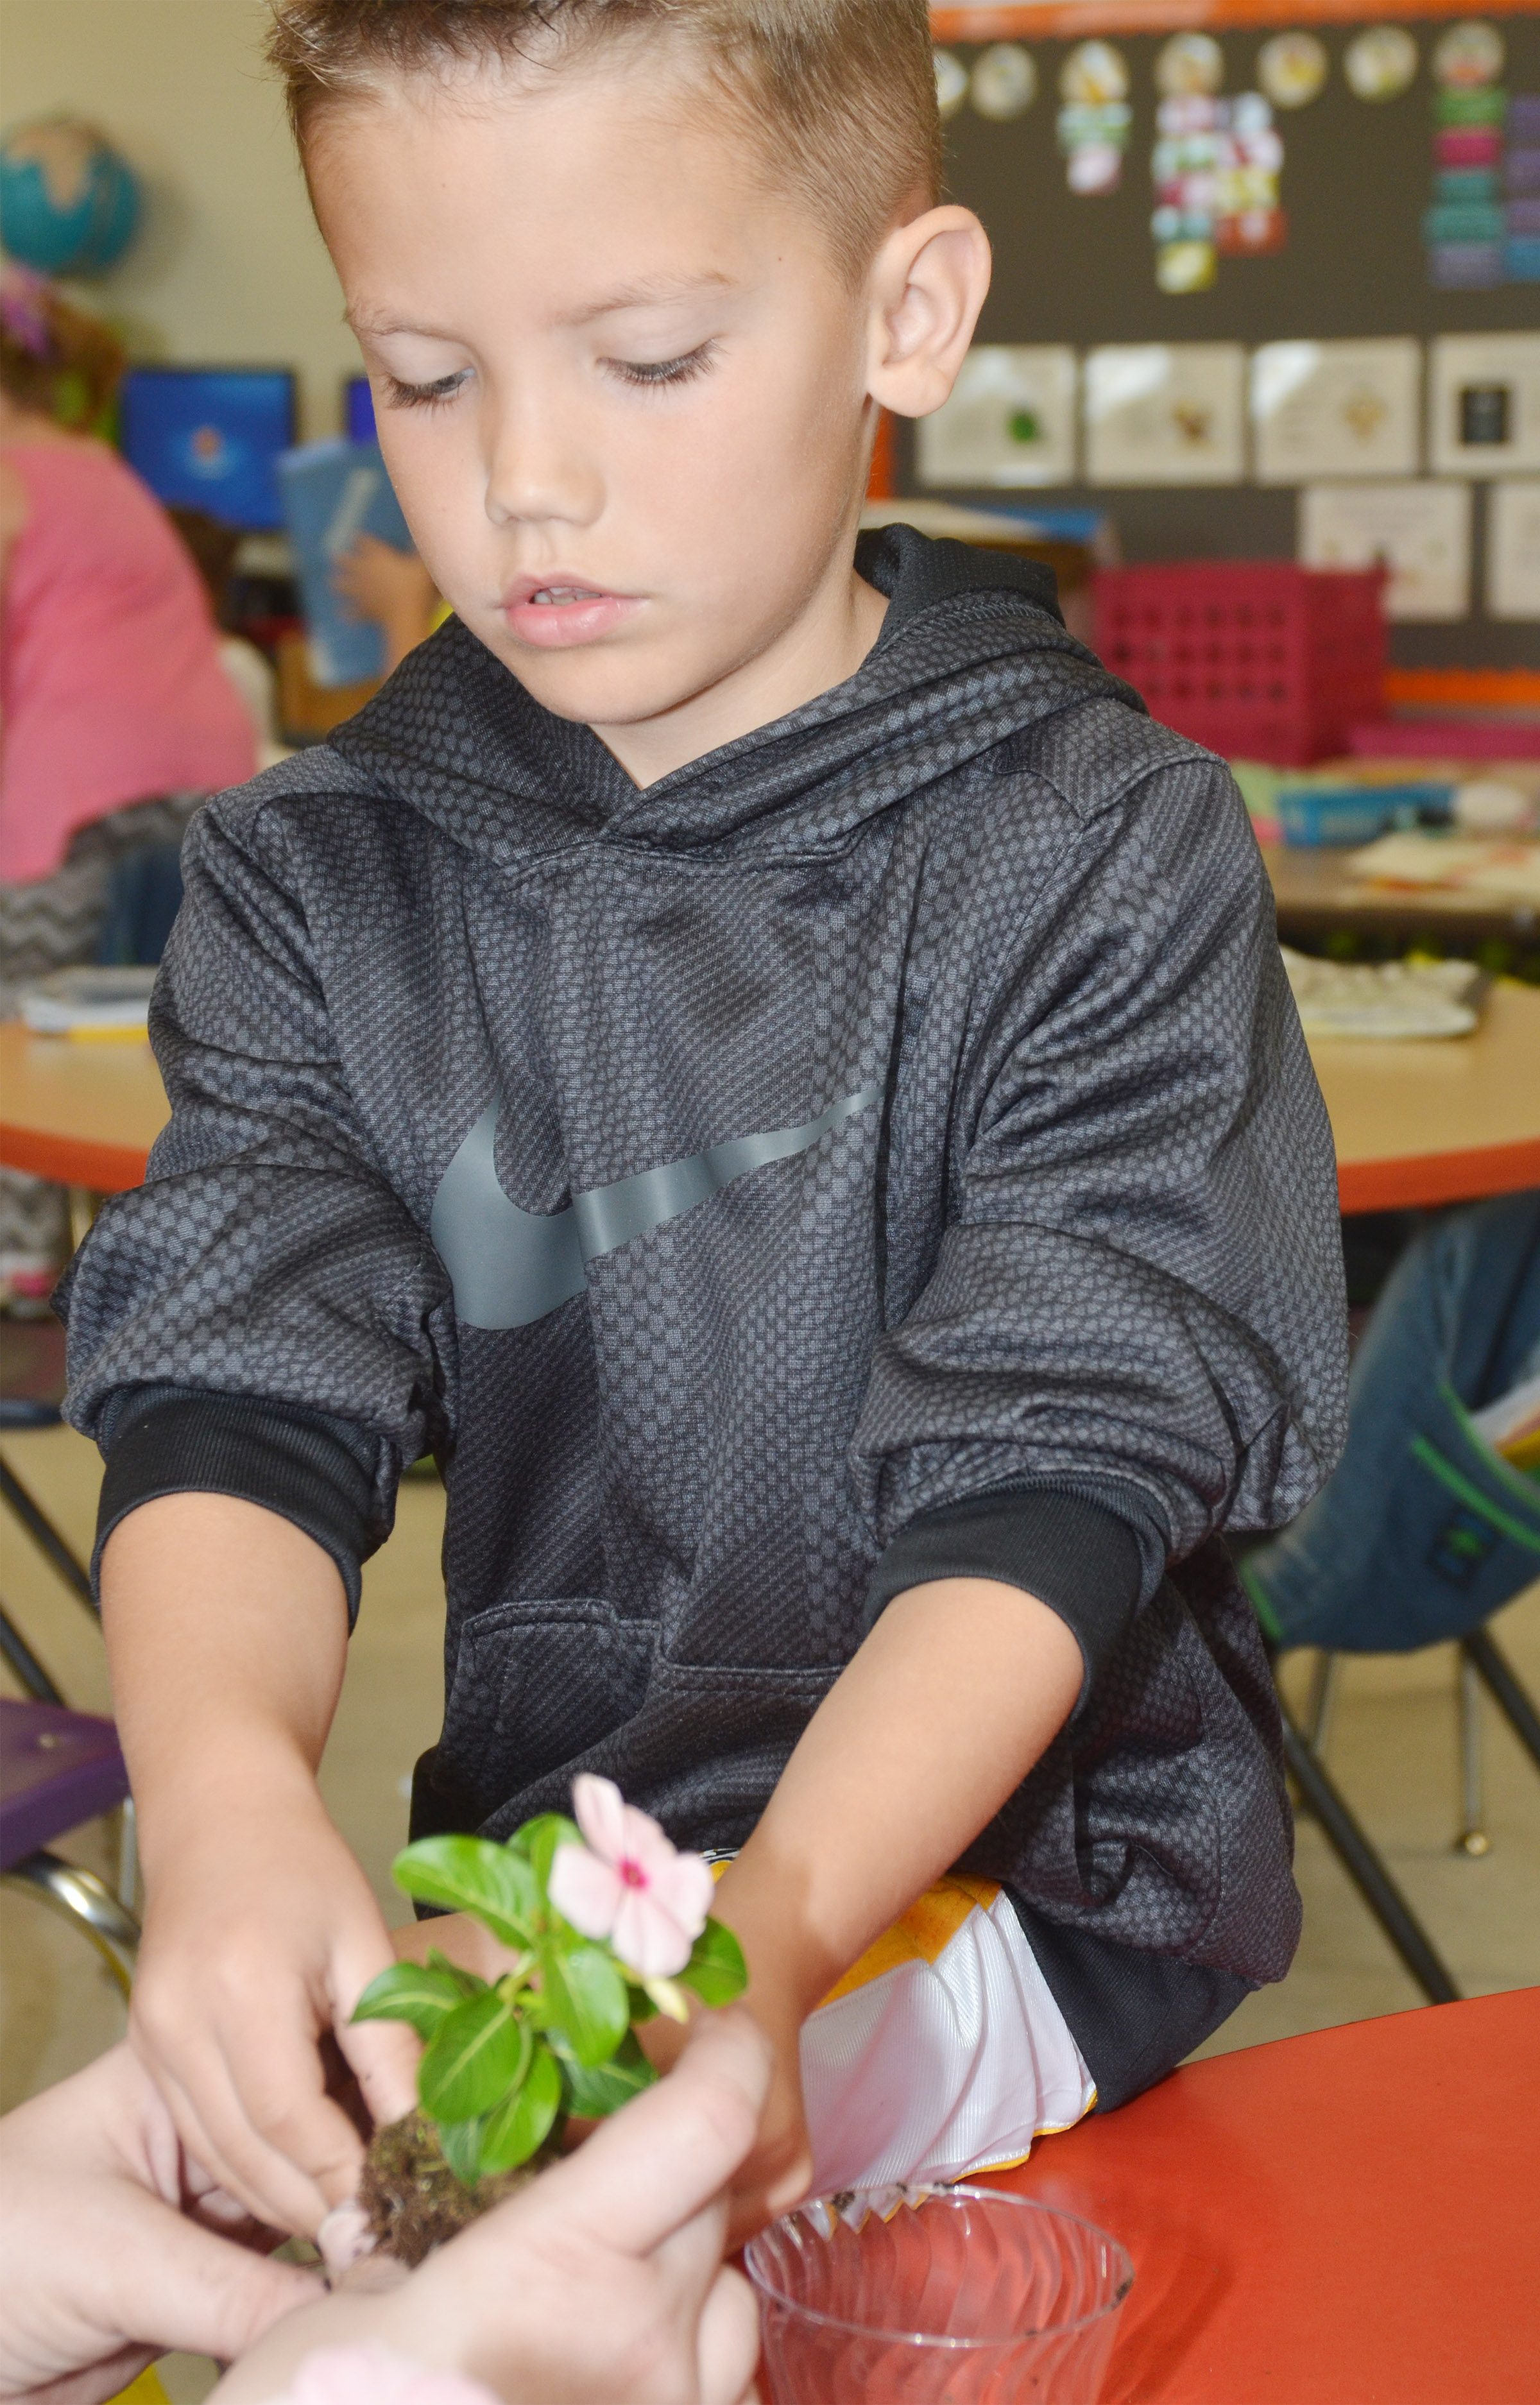 CES first-grader Owen Skaggs plants a flower for his mother.